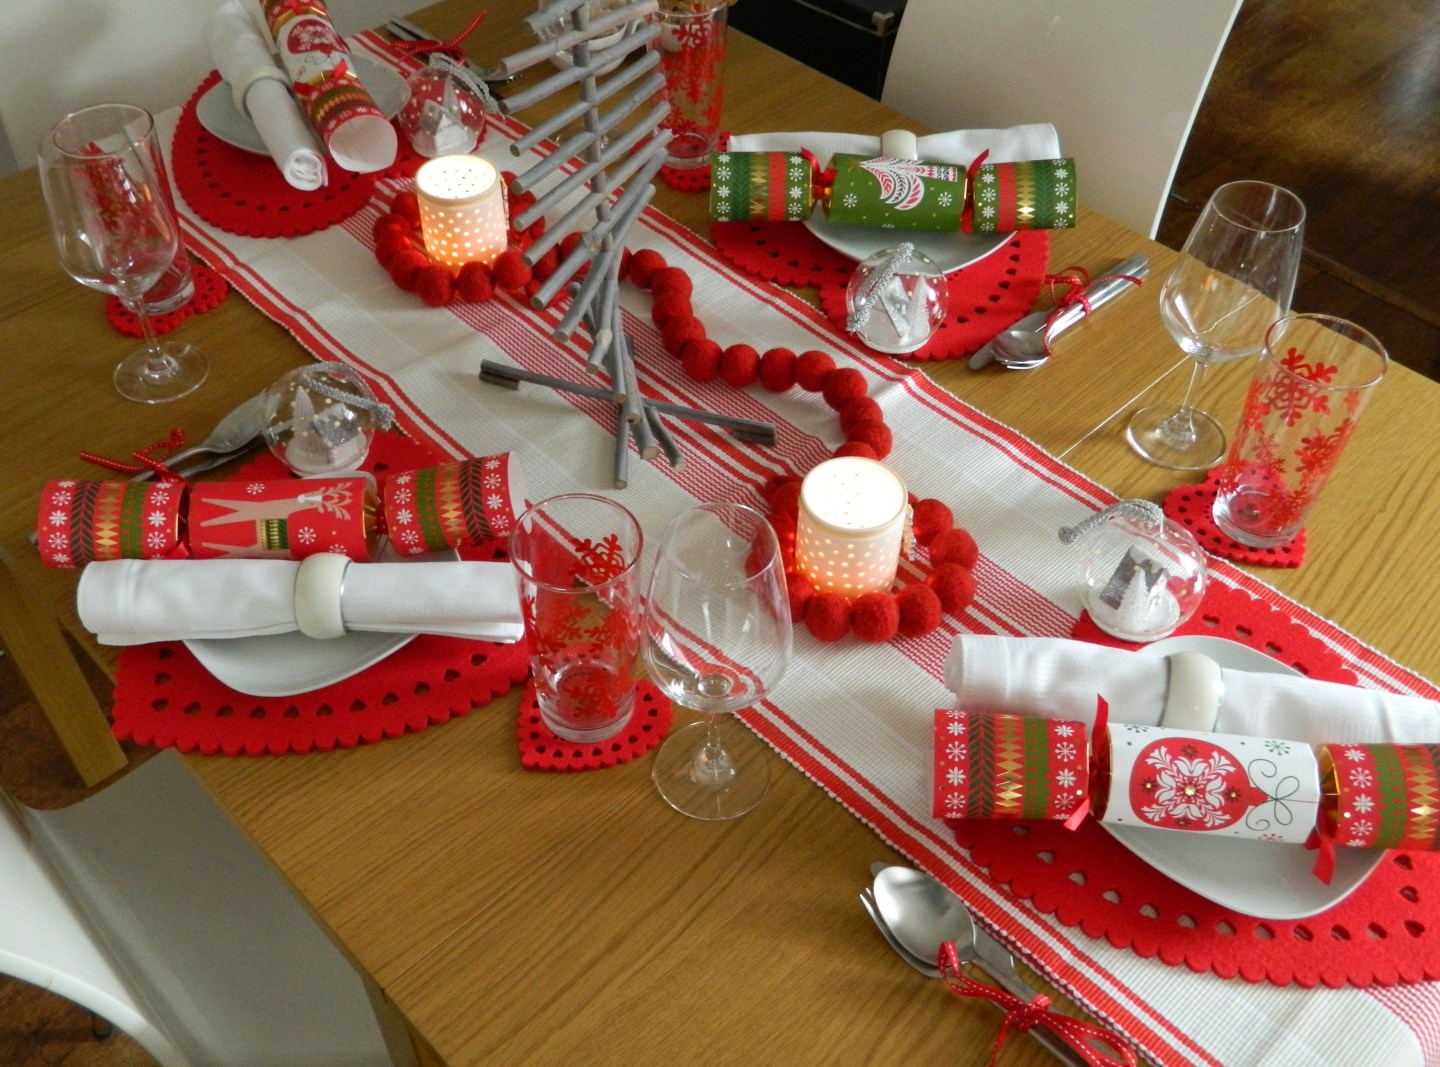 M&S dining table 2